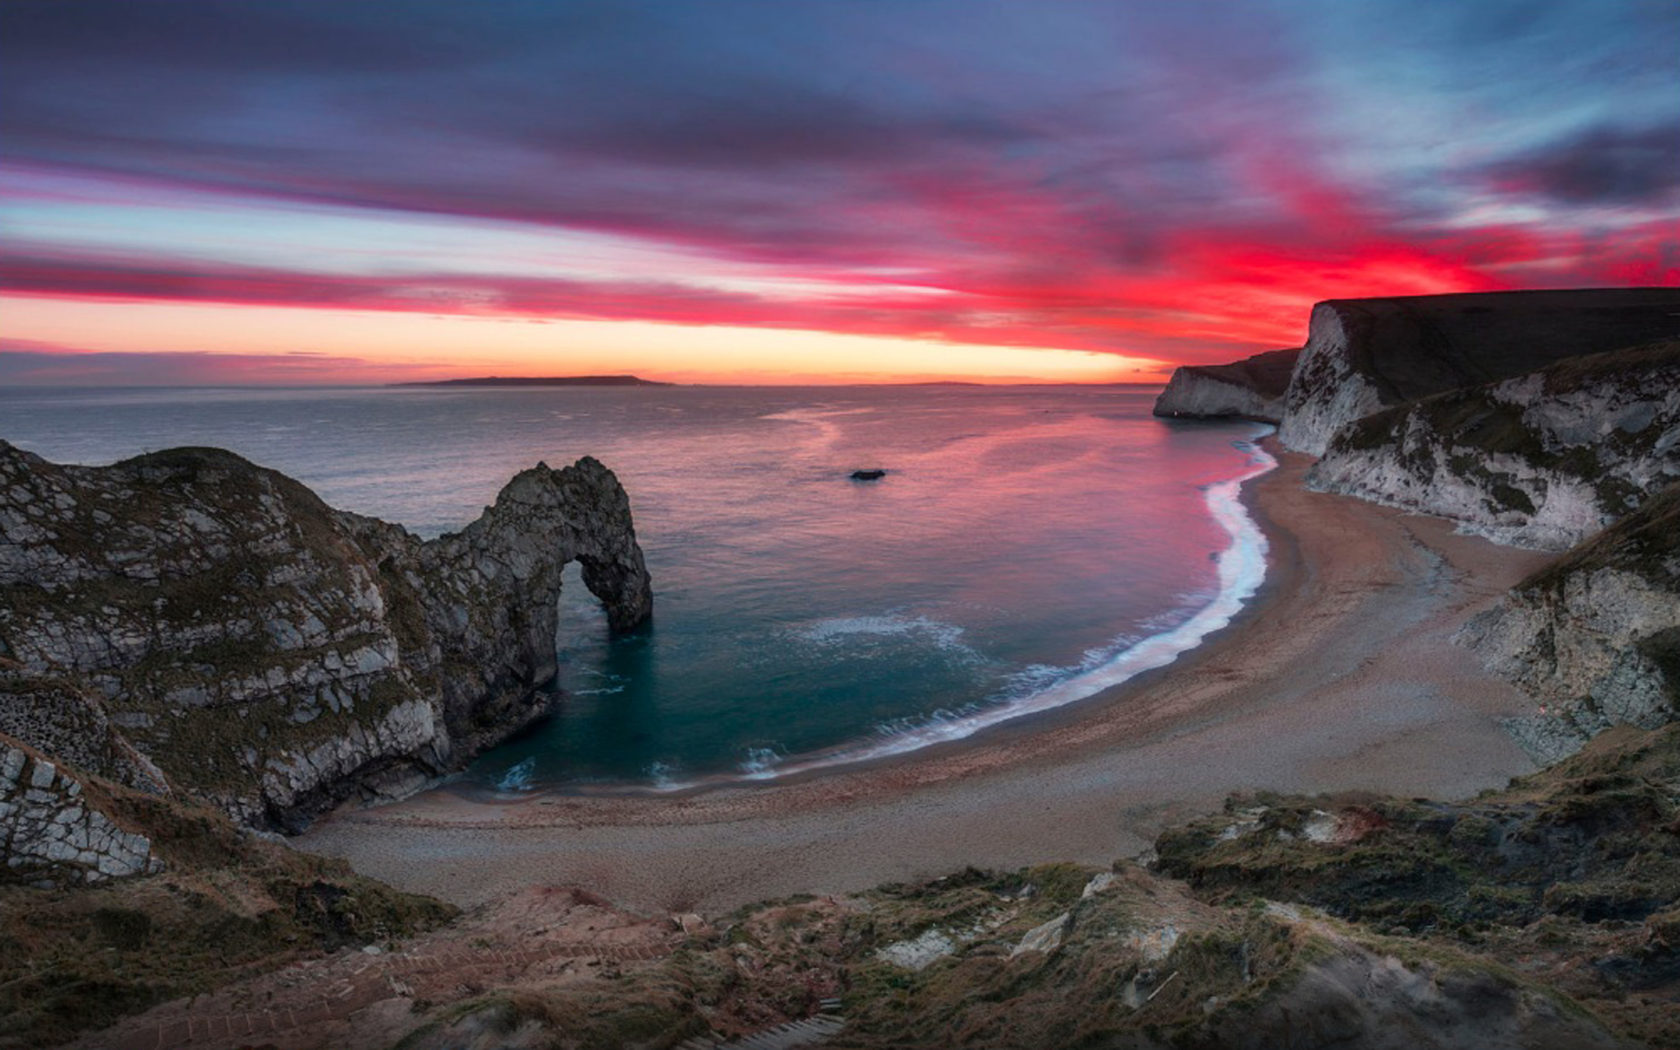 Superb Wallpapers Hd Sea Shore Sky In Flame Nice Red Sunset Over Durdle Door